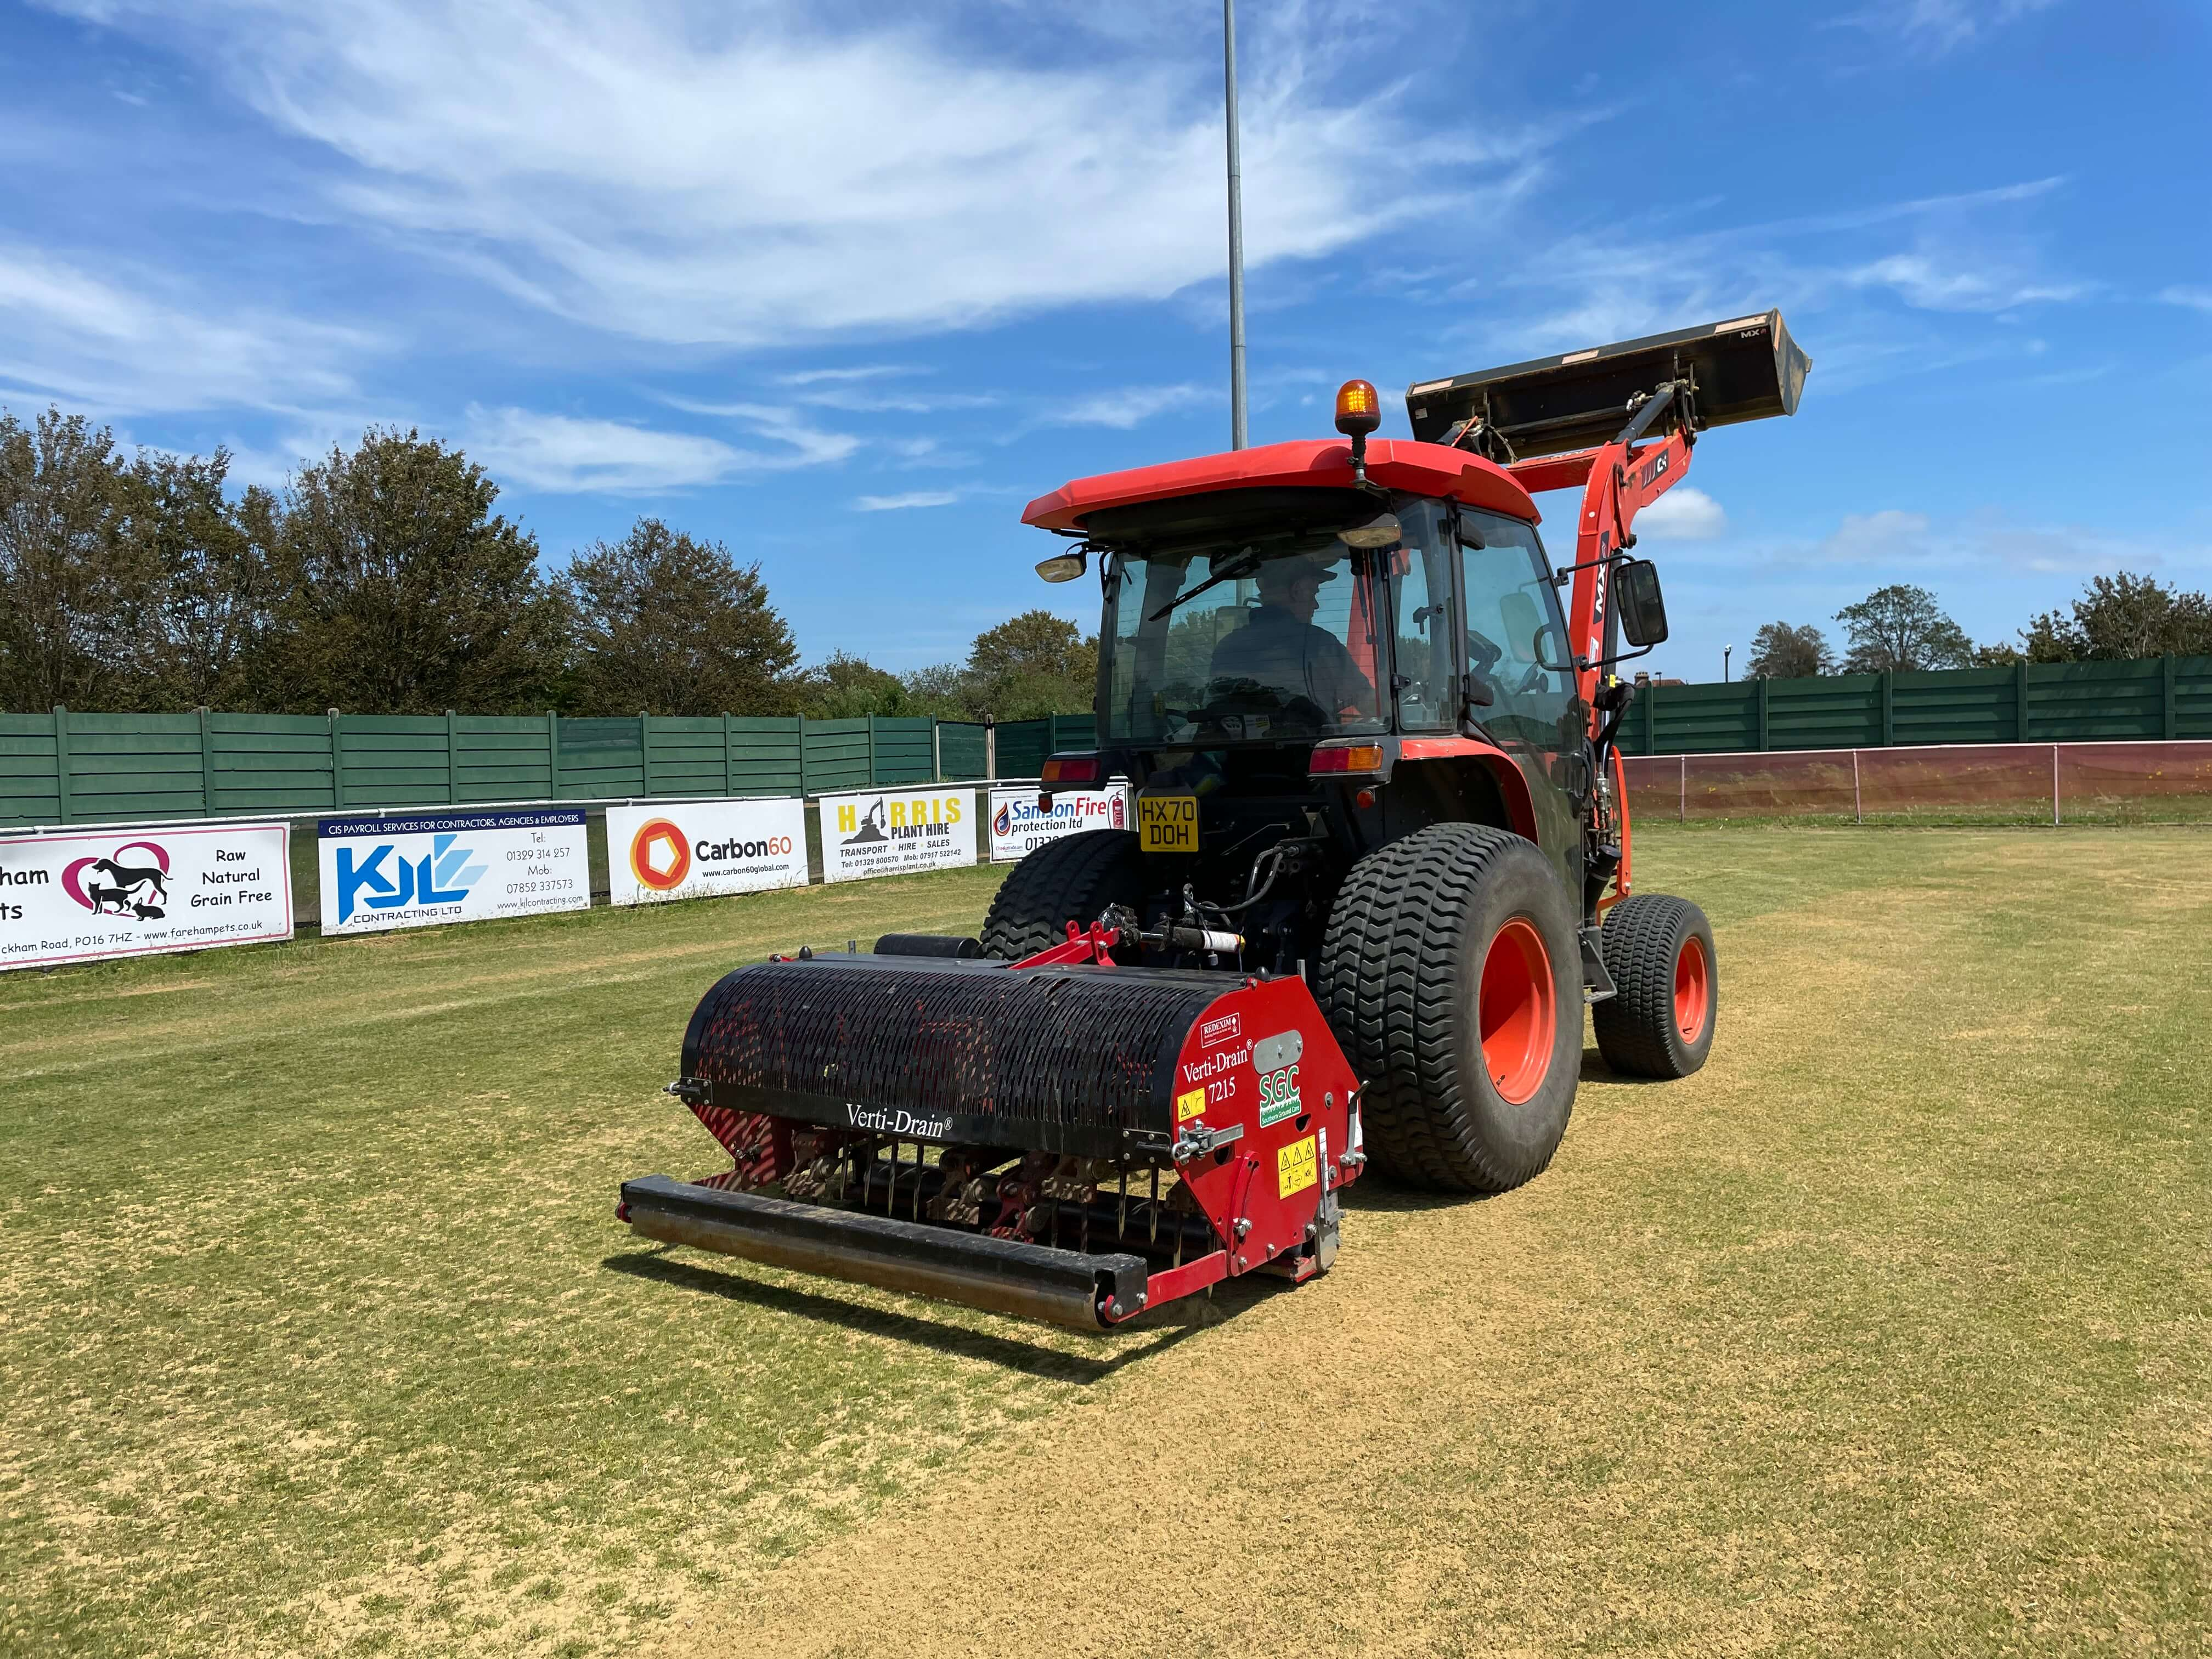 A tractor spiking sand in to a football pitch